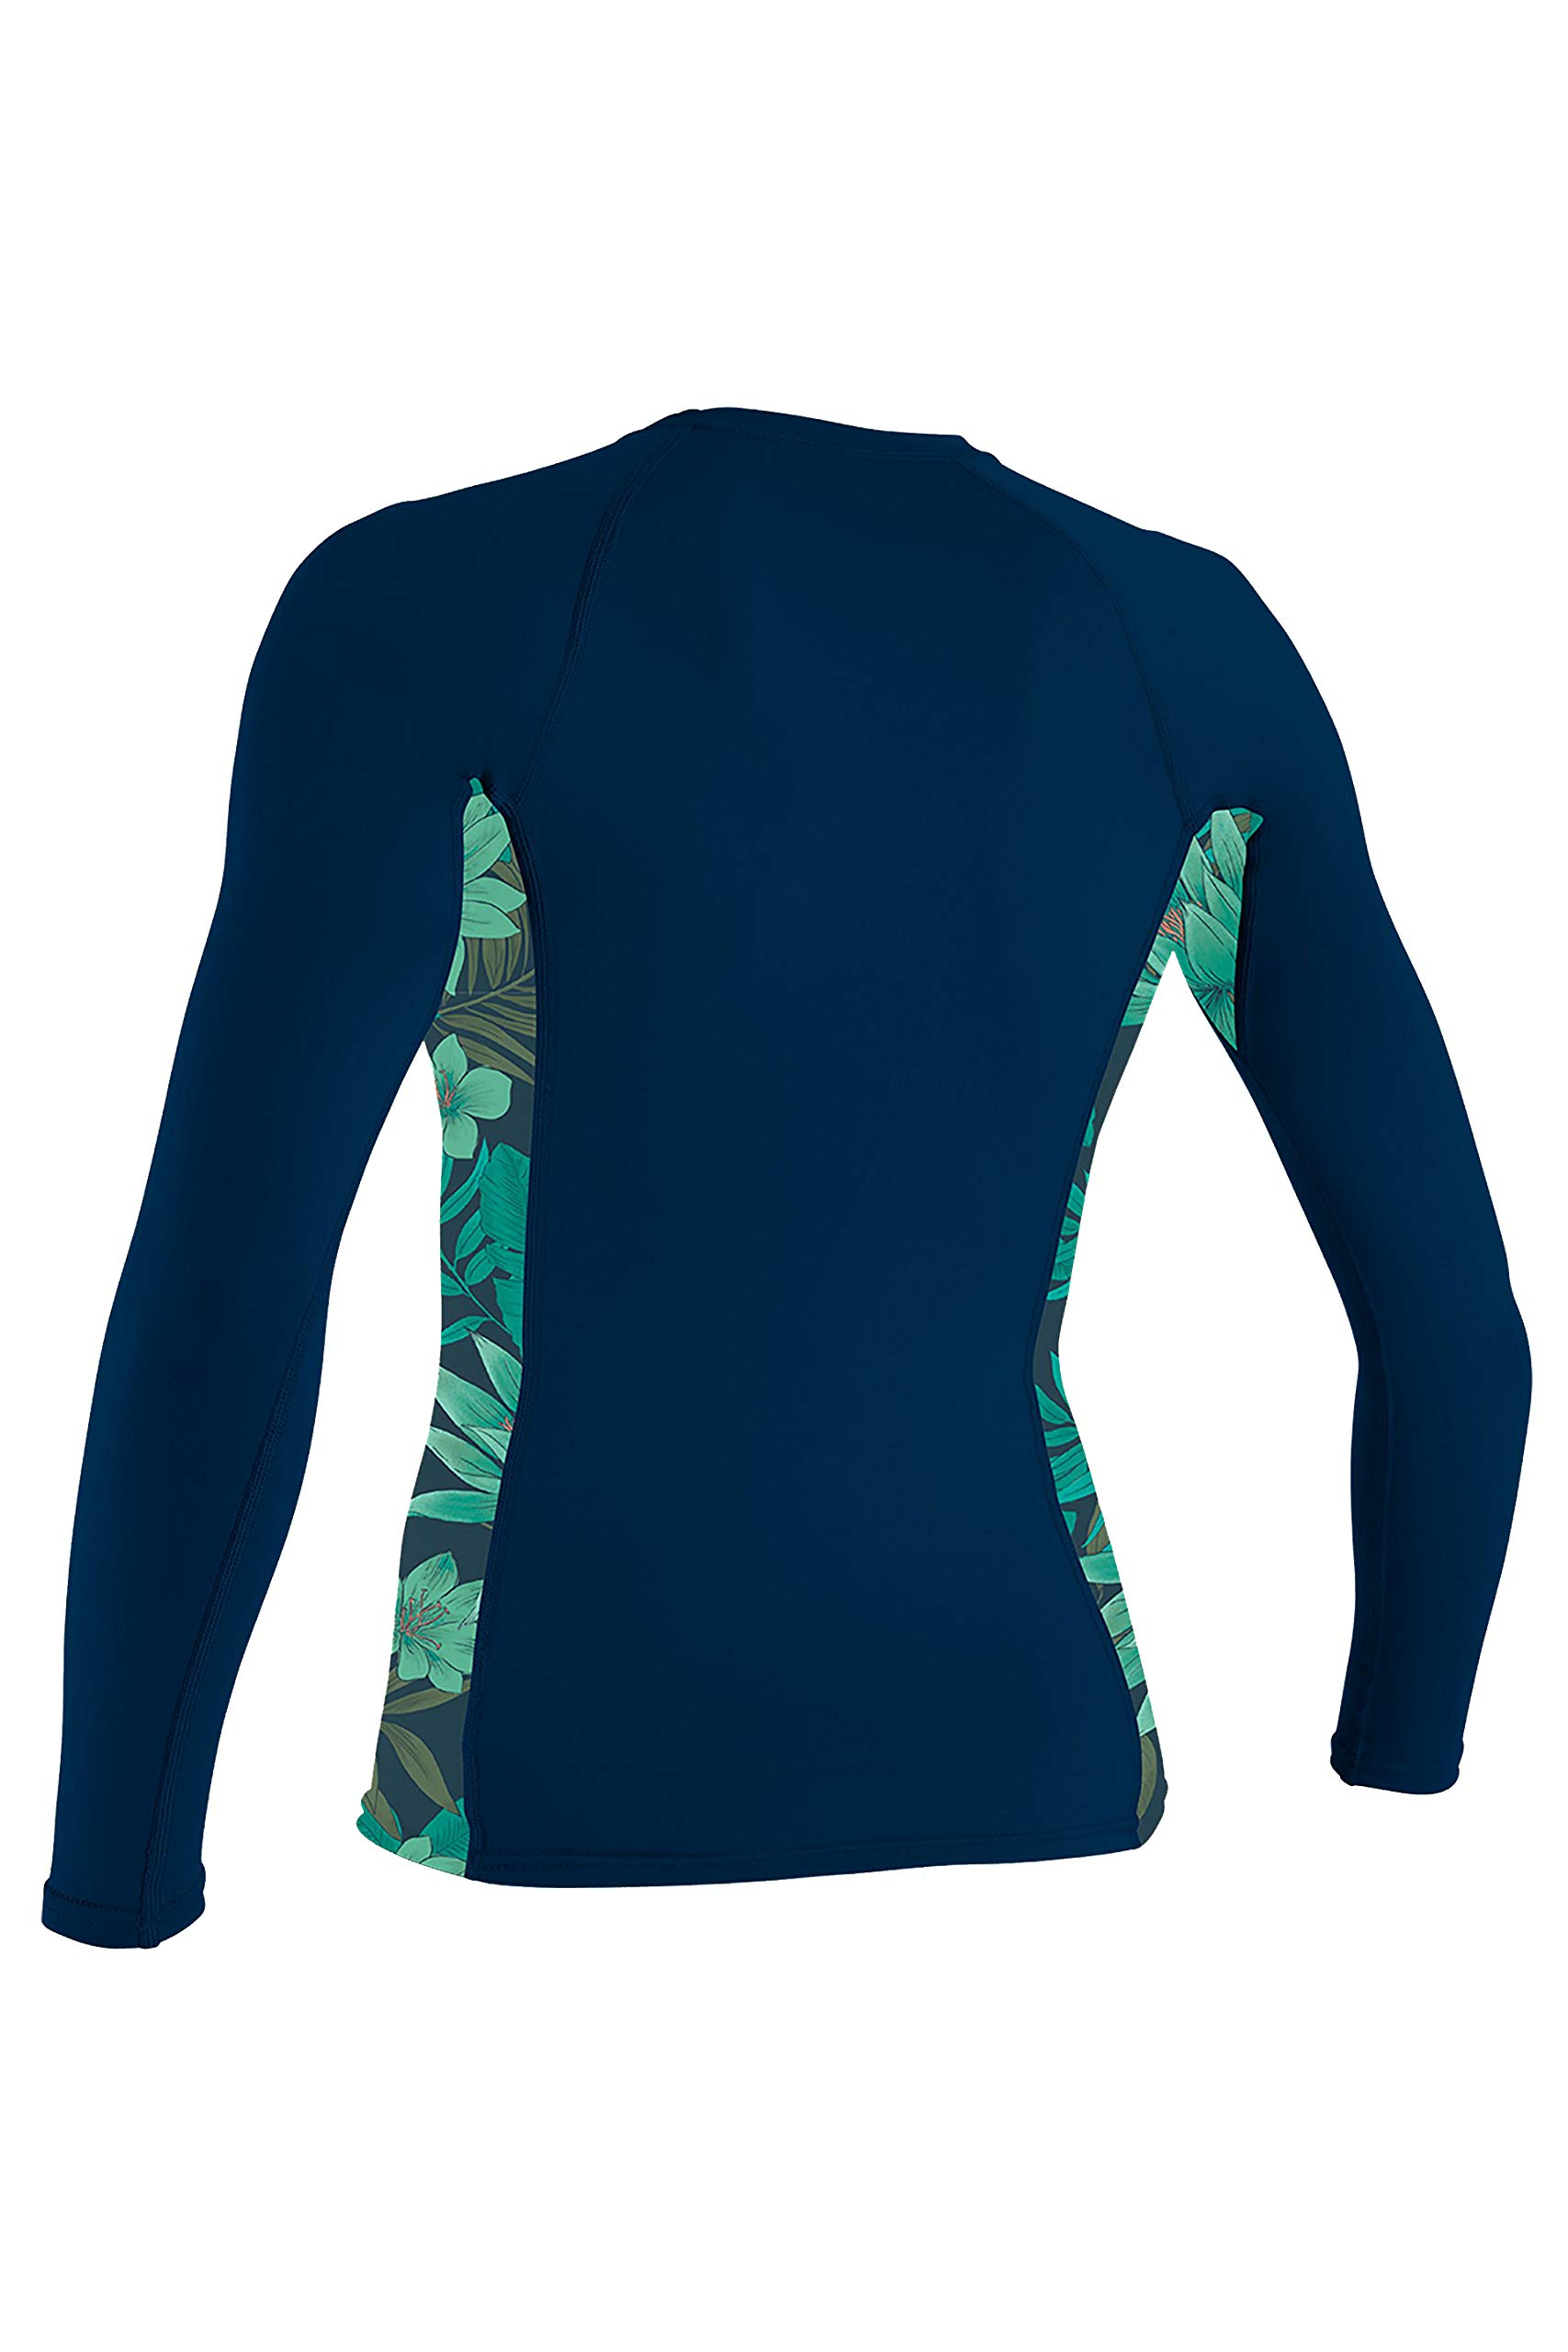 O'Neill Side Print Women's Long-Sleeve Rashguards - Abyss/Faro/Medium